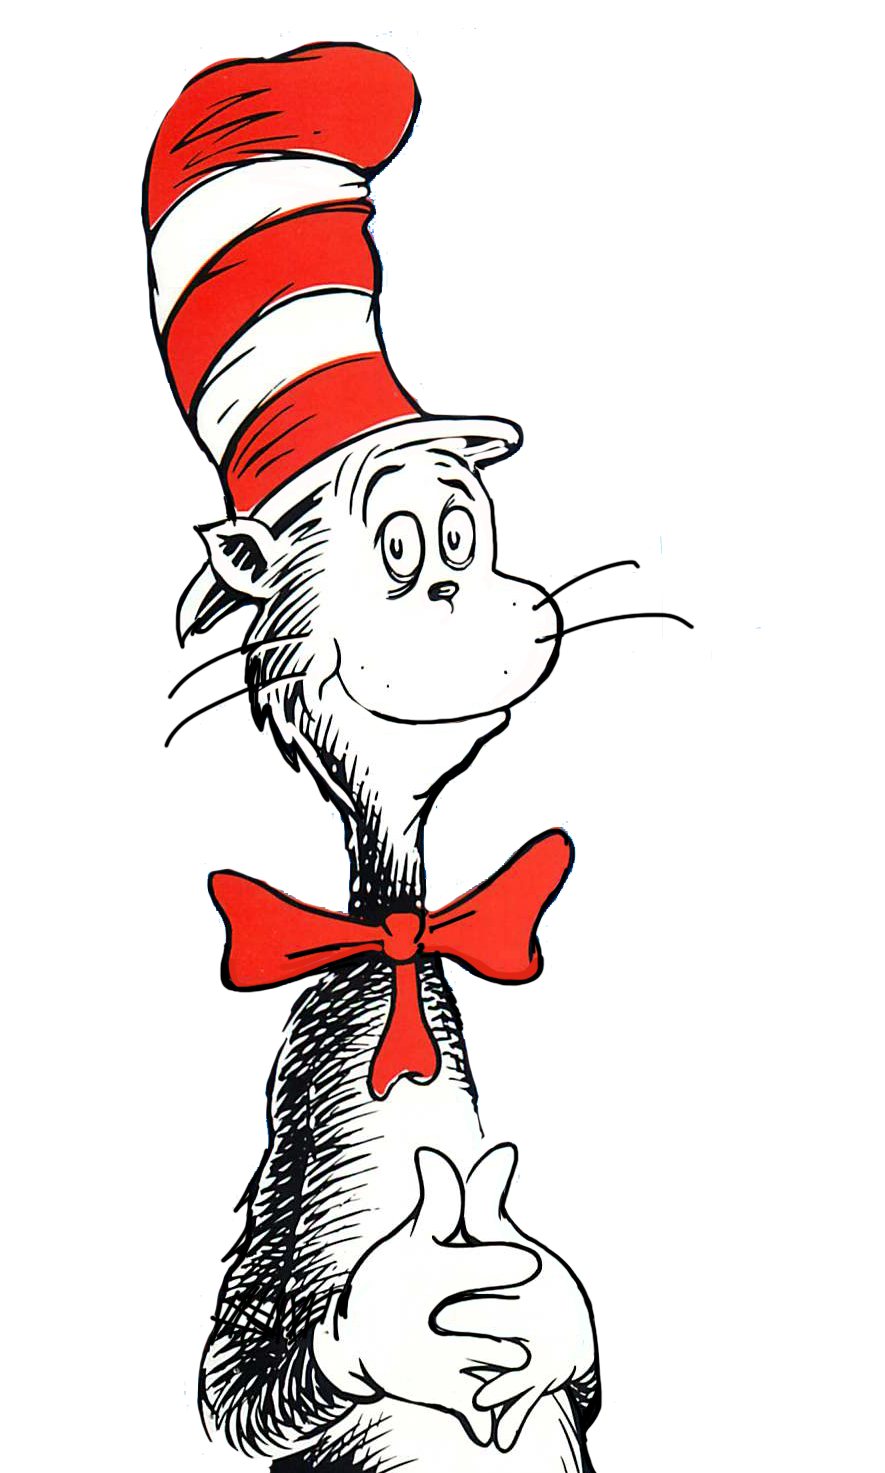 Your cat clipart library The Cat in the Hat | VS Battles Wiki | FANDOM powered by Wikia library